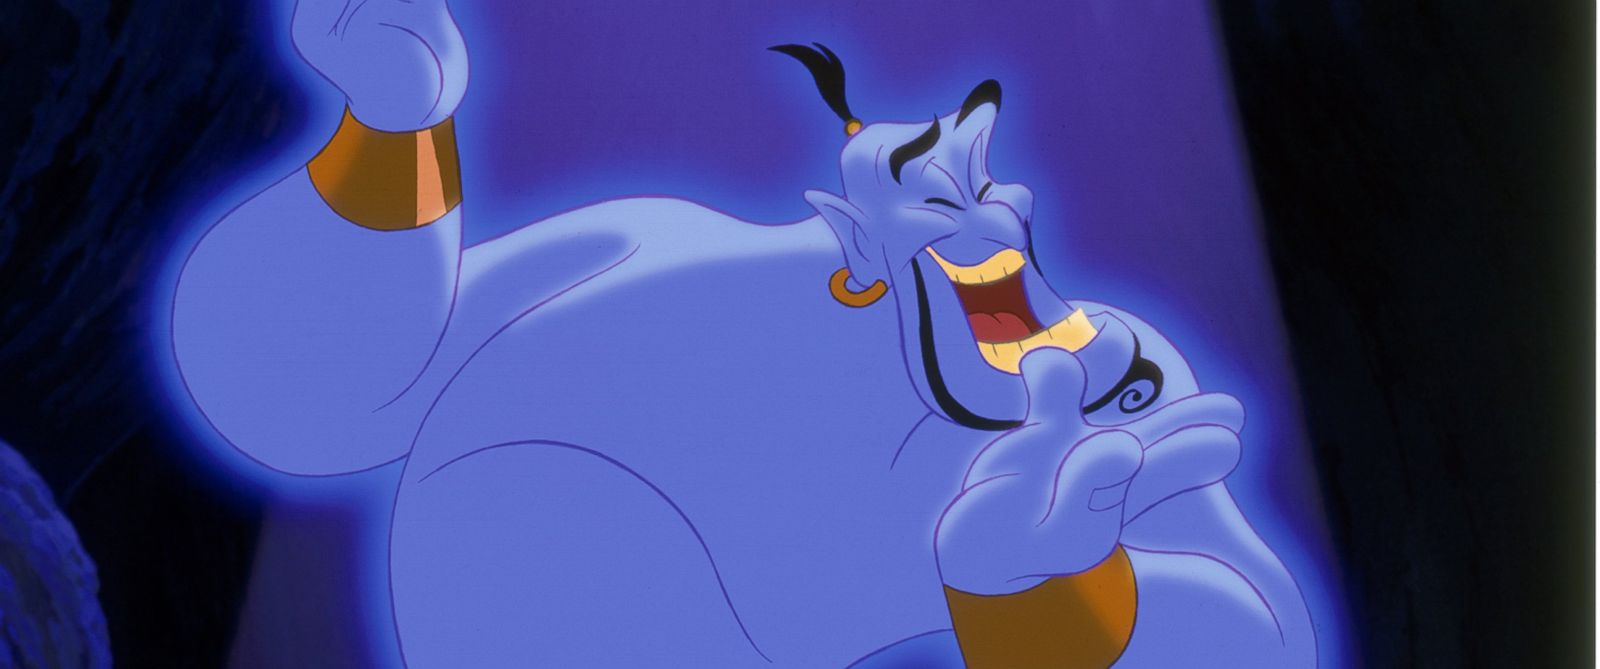 """PHOTO: The Genie from the 1992 Disney film, """"Aladdin"""" was voiced by actor Robin Williams."""